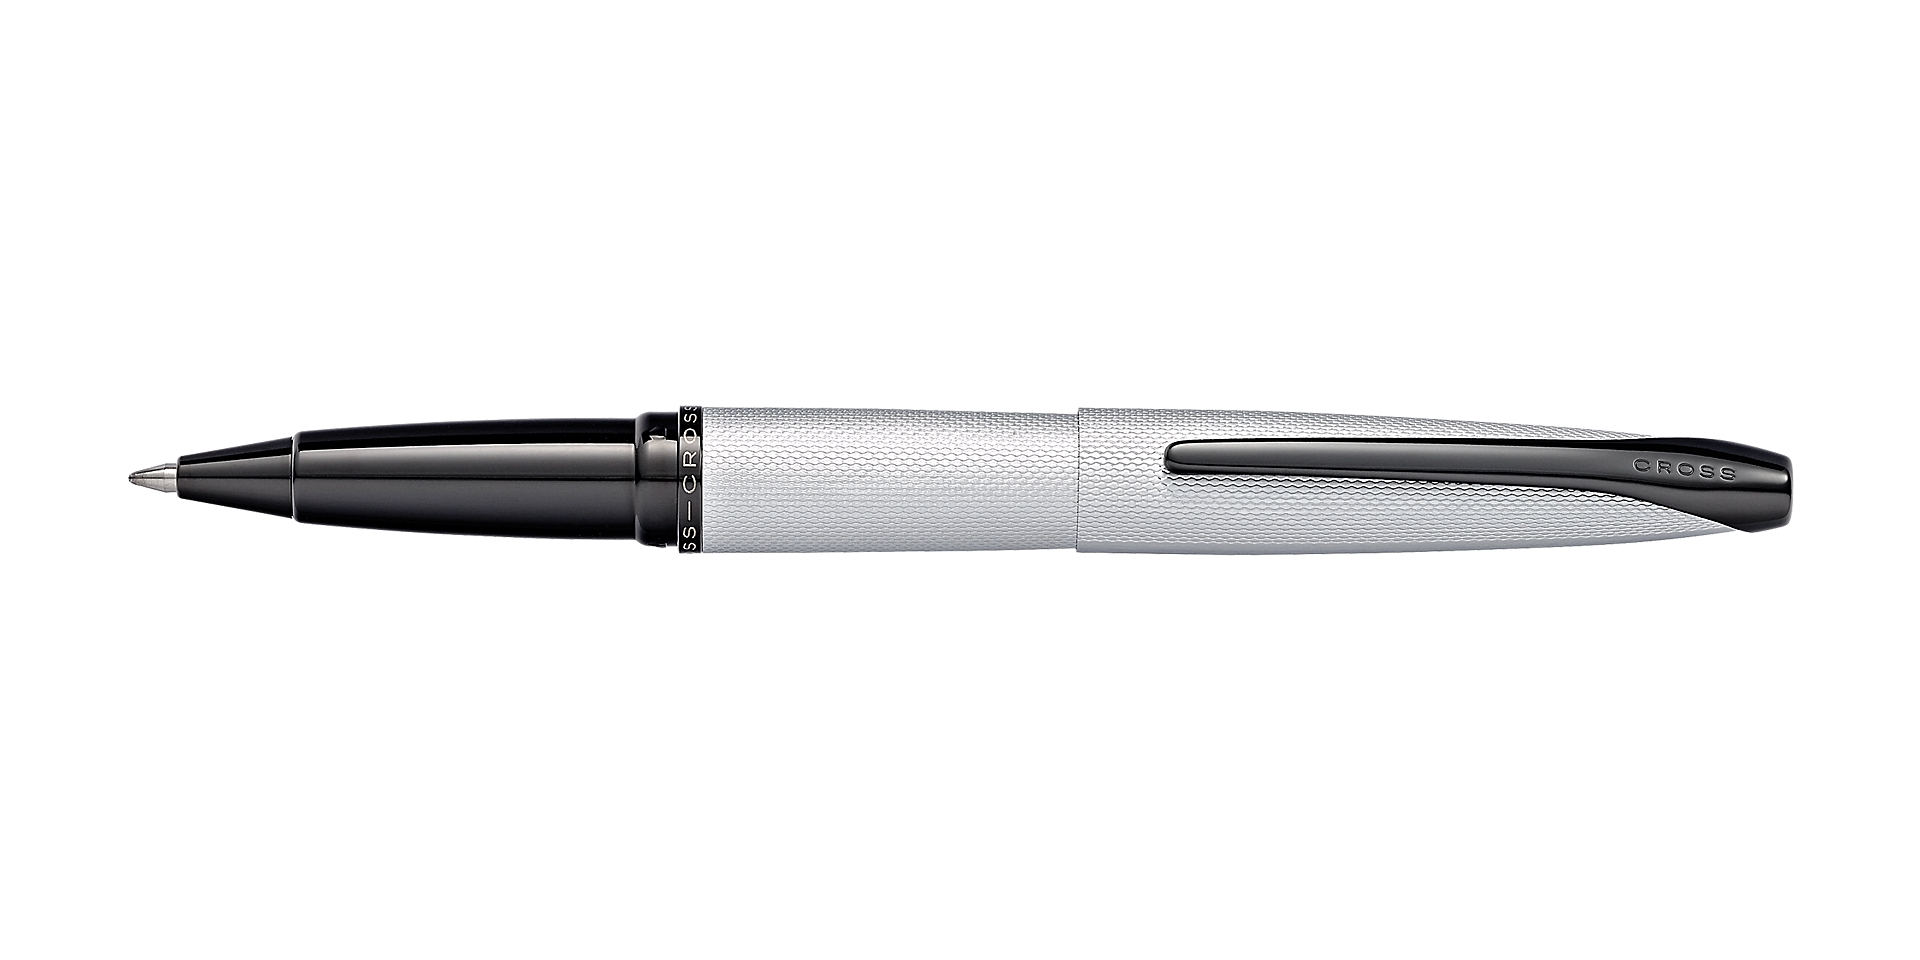 Cross ATX Brushed Chrome Rollerball Pen Picture